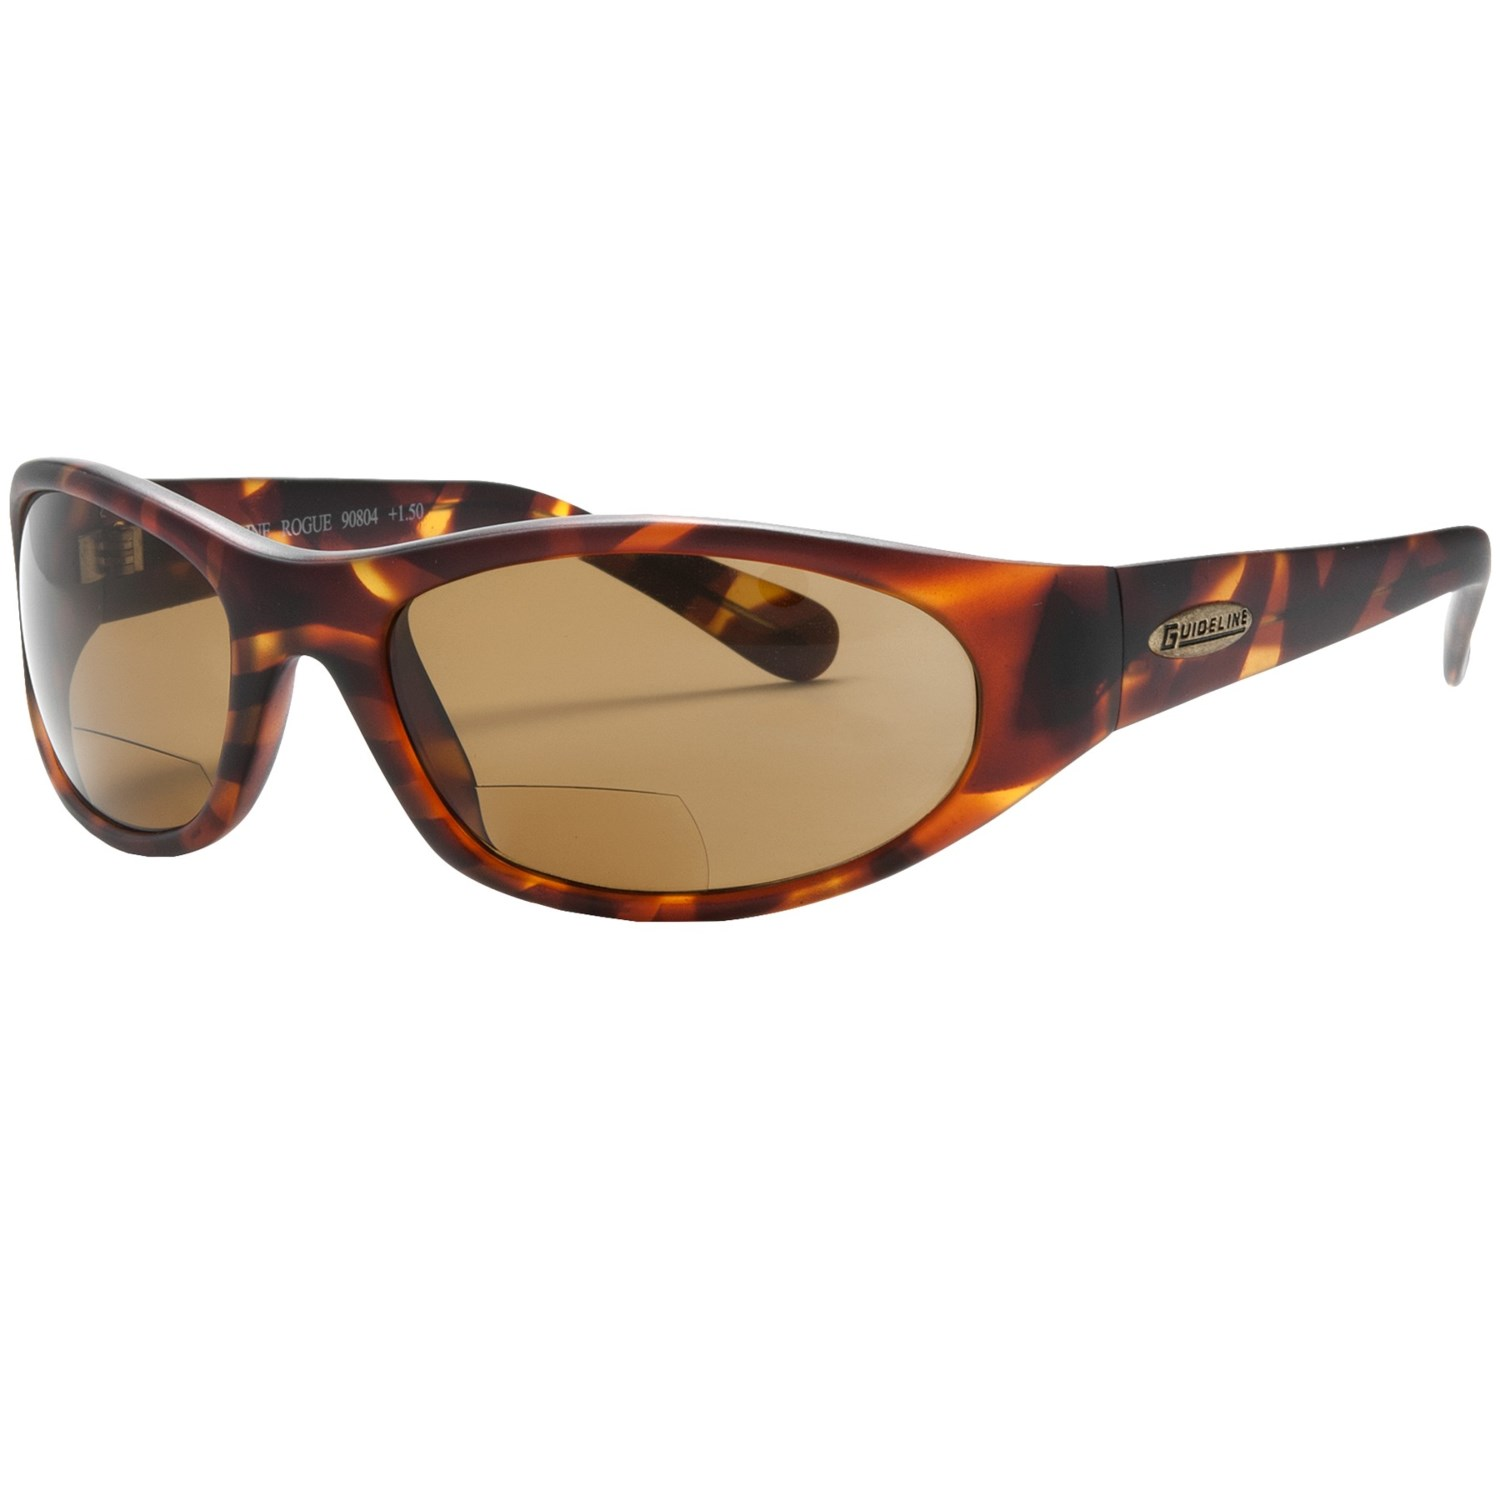 a0c2fdcefb Heritage Sunglasses Oakley Malta Philippines Repair « 1RIWqPYw